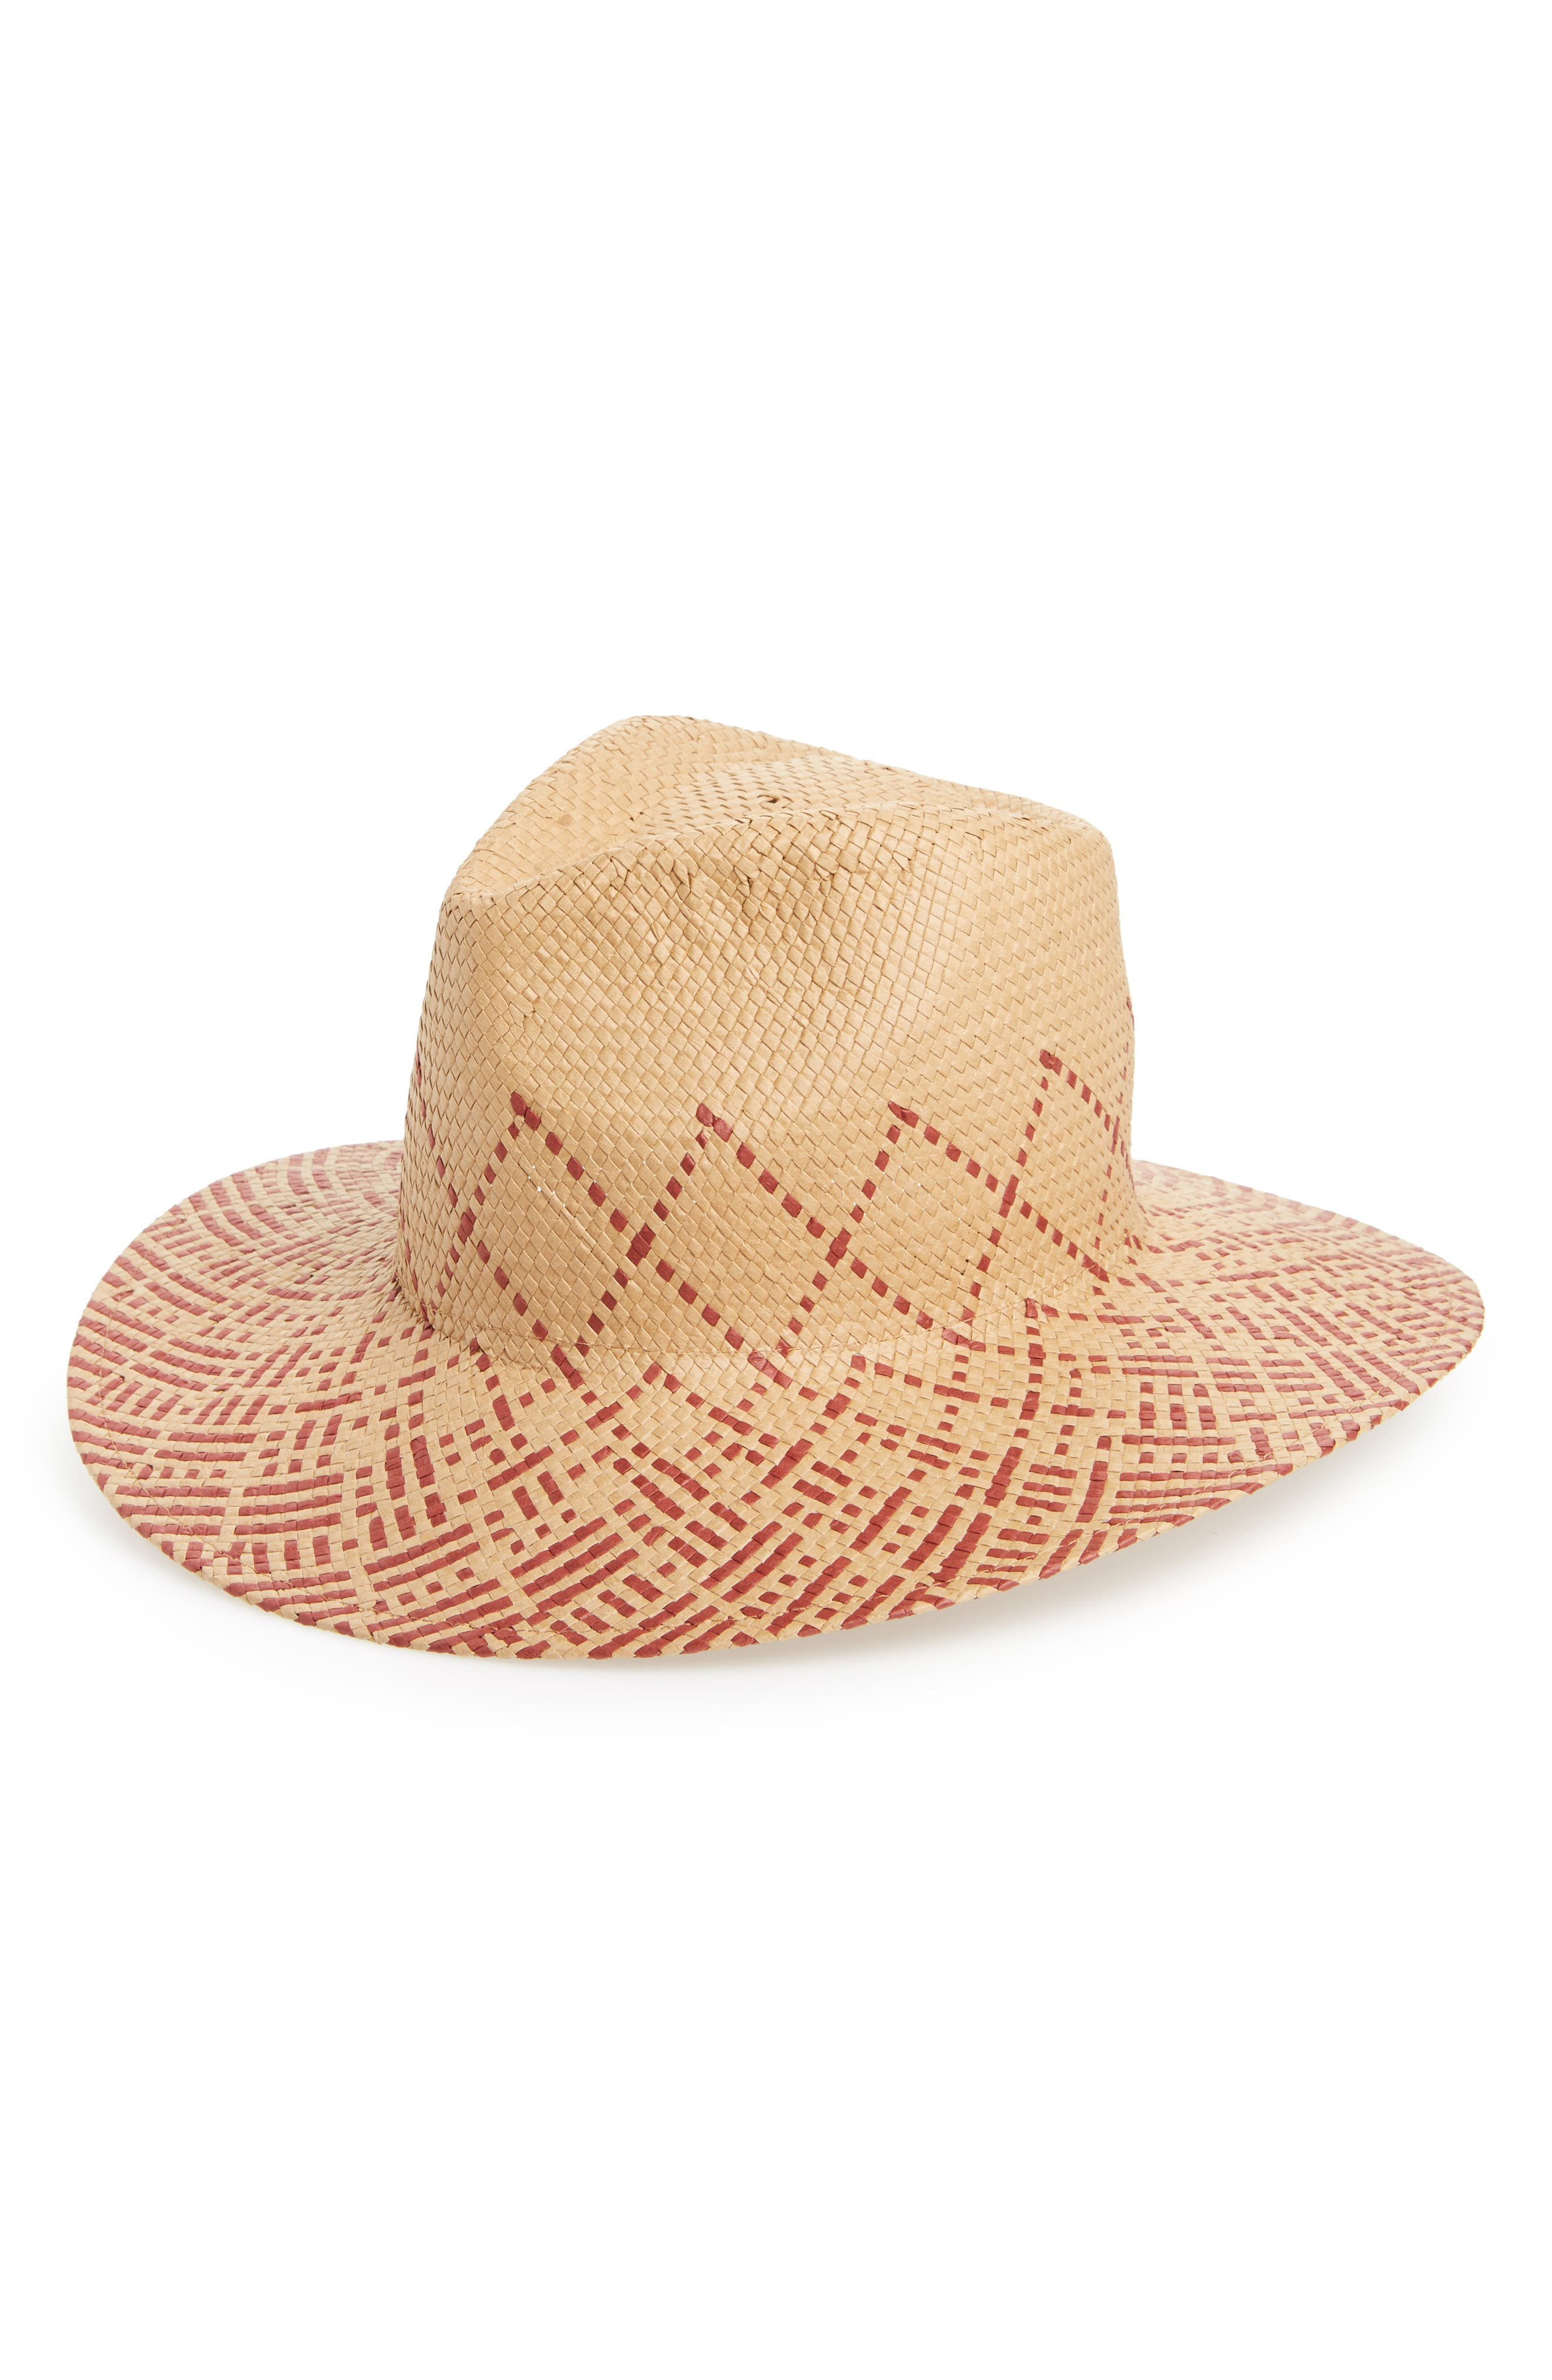 Alternate Image 1 Selected - BP. Two-Tone Straw Hat